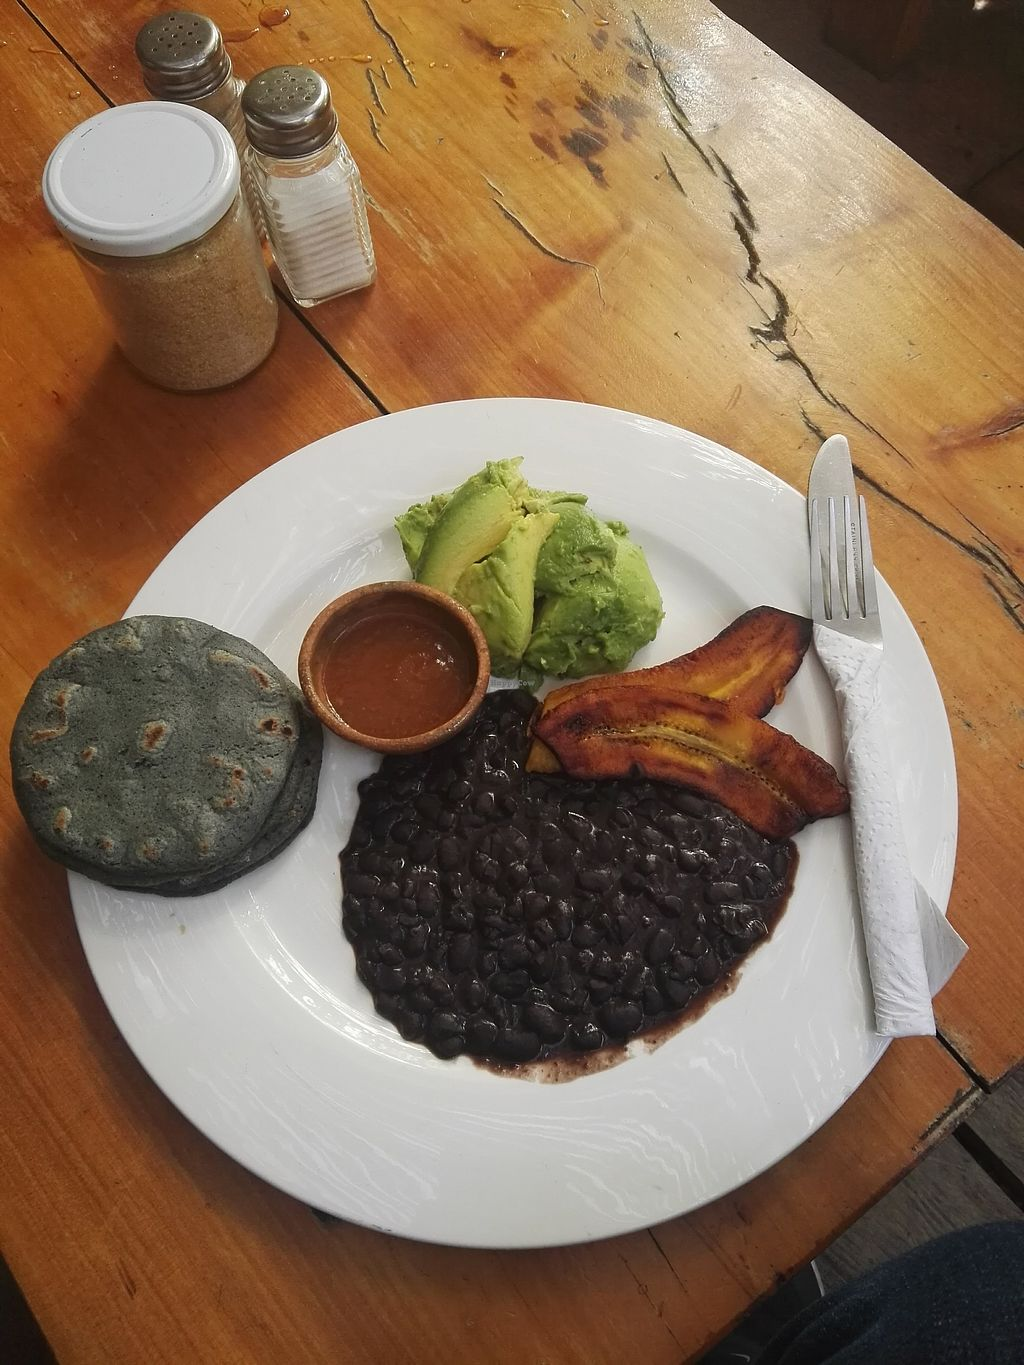 """Photo of Circles Cafe and Hostel  by <a href=""""/members/profile/Caroly"""">Caroly</a> <br/>""""Veganized"""" version of the breakfast """"Tipico"""" which comes normally with egg and white cheese. I got an extra portion of aguacate <br/> December 17, 2017  - <a href='/contact/abuse/image/54261/336551'>Report</a>"""